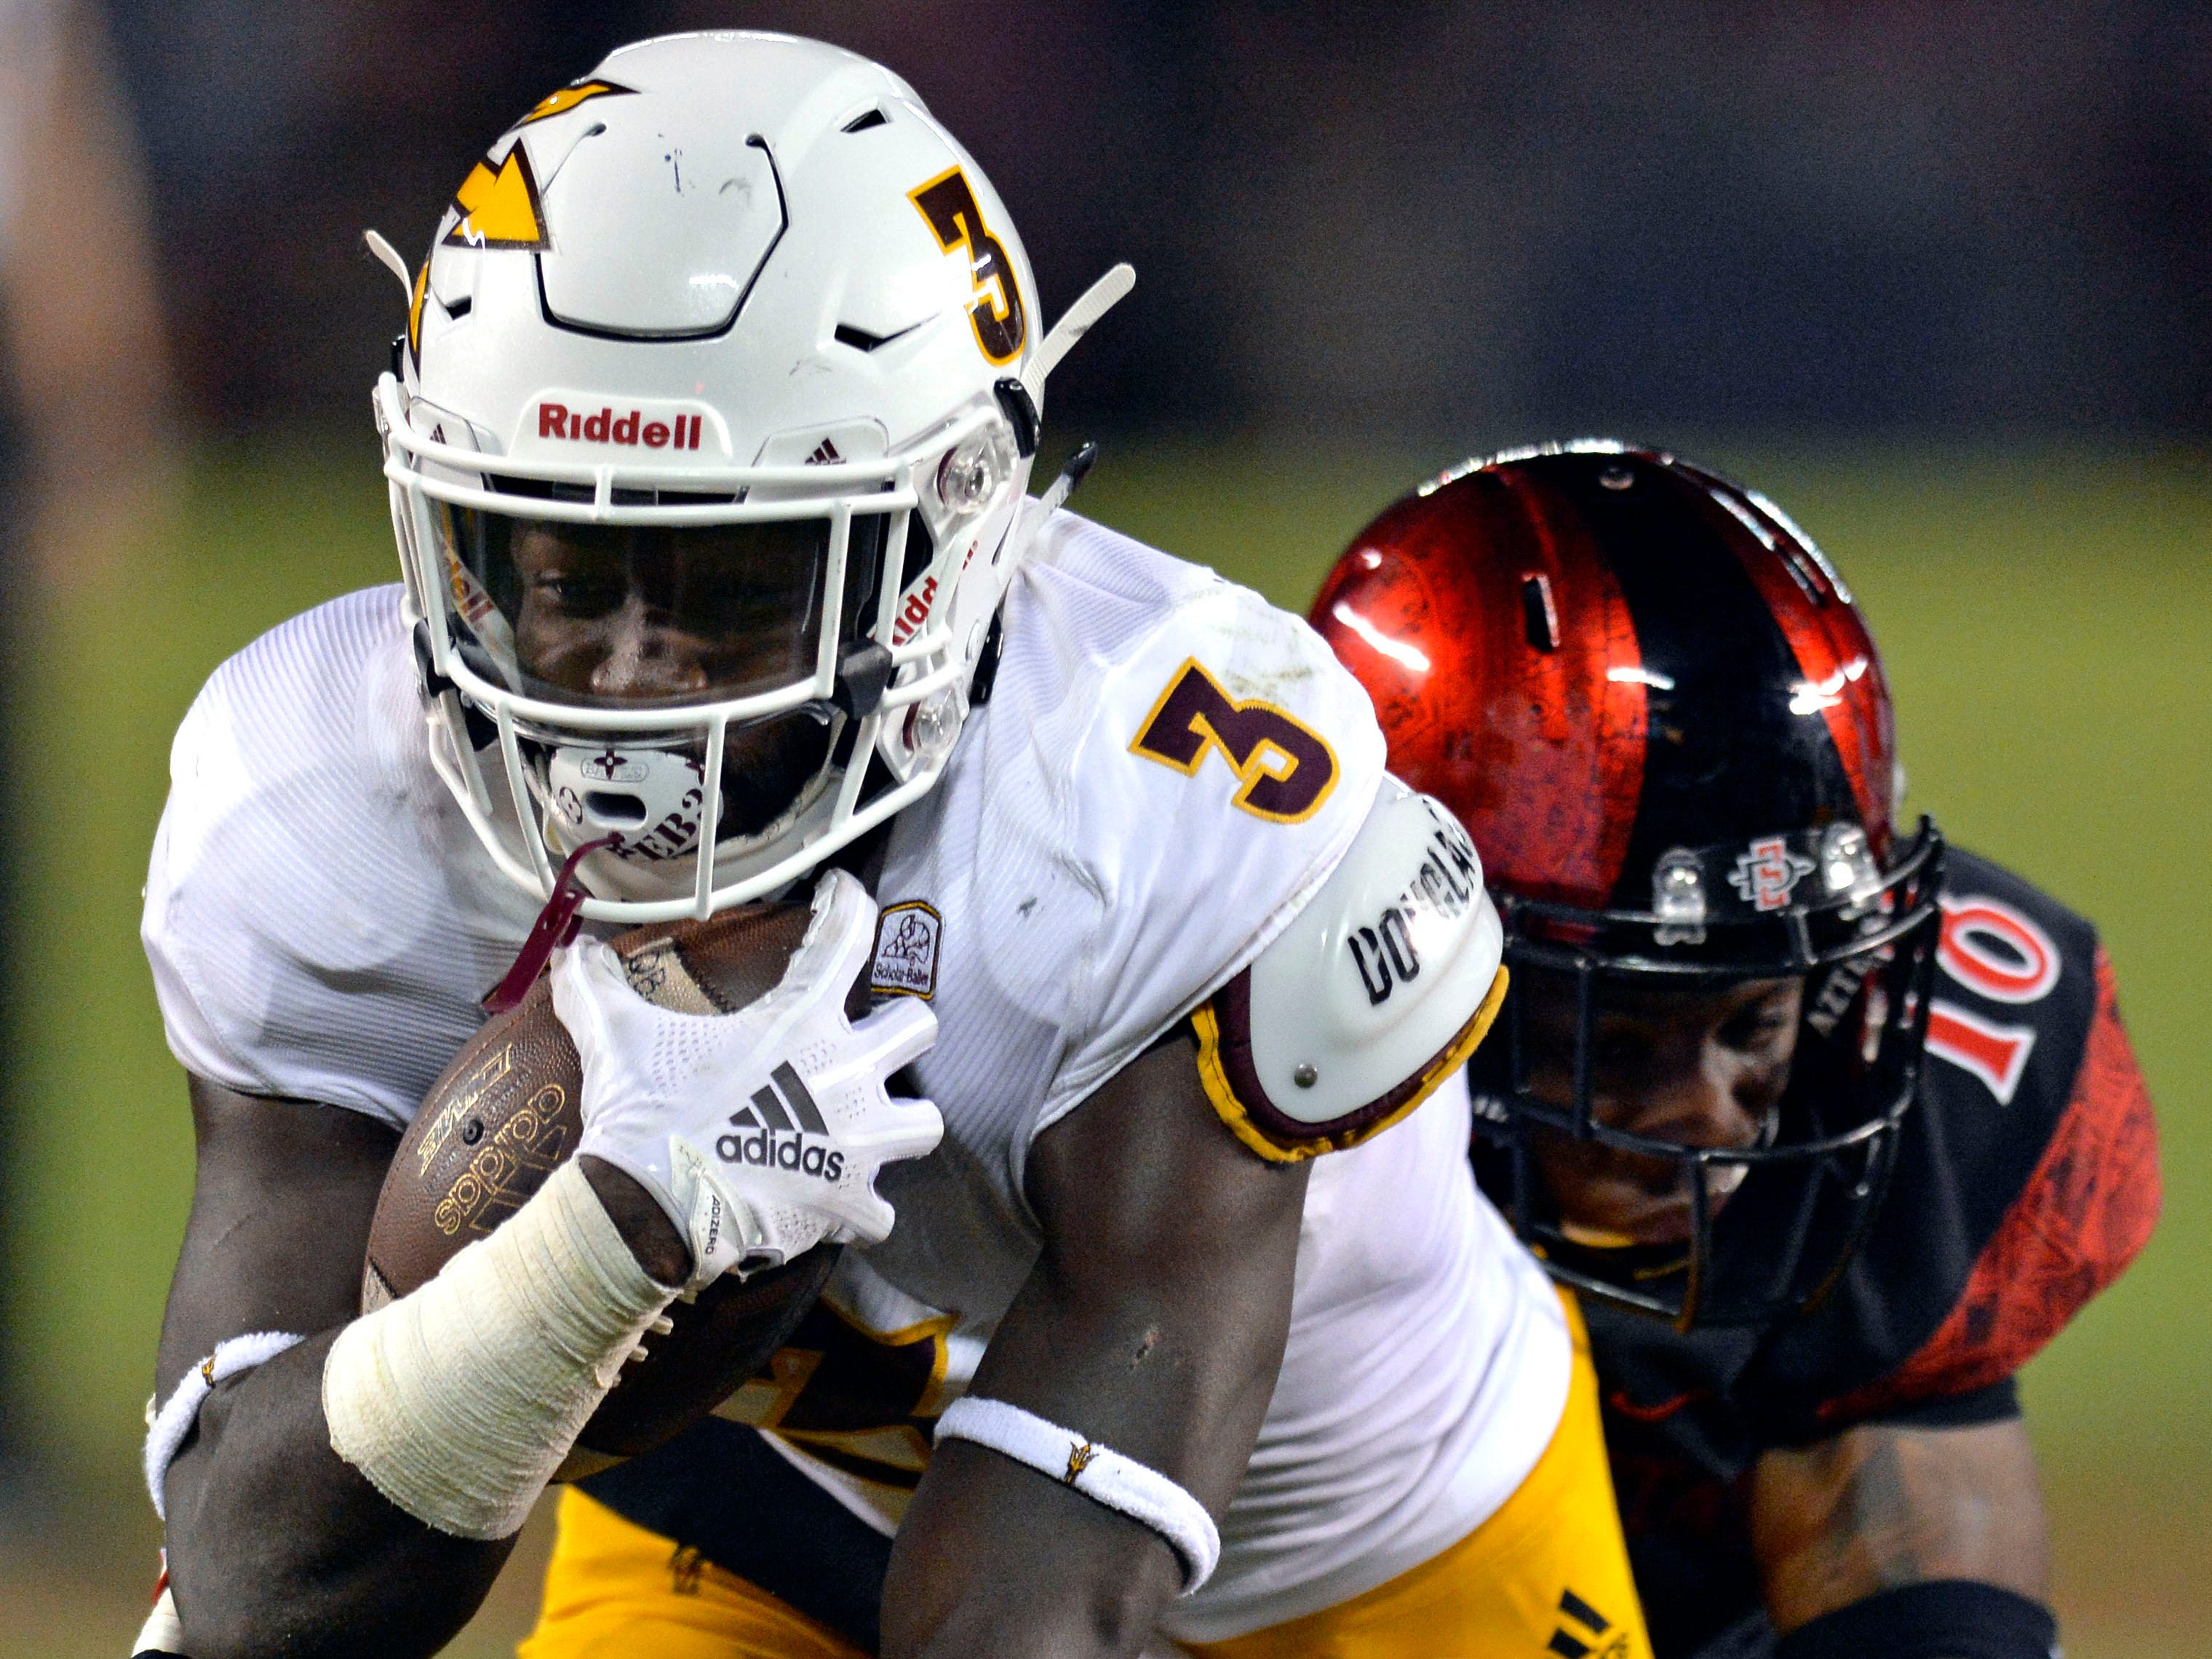 Sep 15, 2018; San Diego, CA, USA; Arizona State Sun Devils running back Eno Benjamin (3) runs against San Diego State Aztecs safety Trenton Thompson (18) during the second quarter at SDCCU Stadium. Mandatory Credit: Jake Roth-USA TODAY Sports